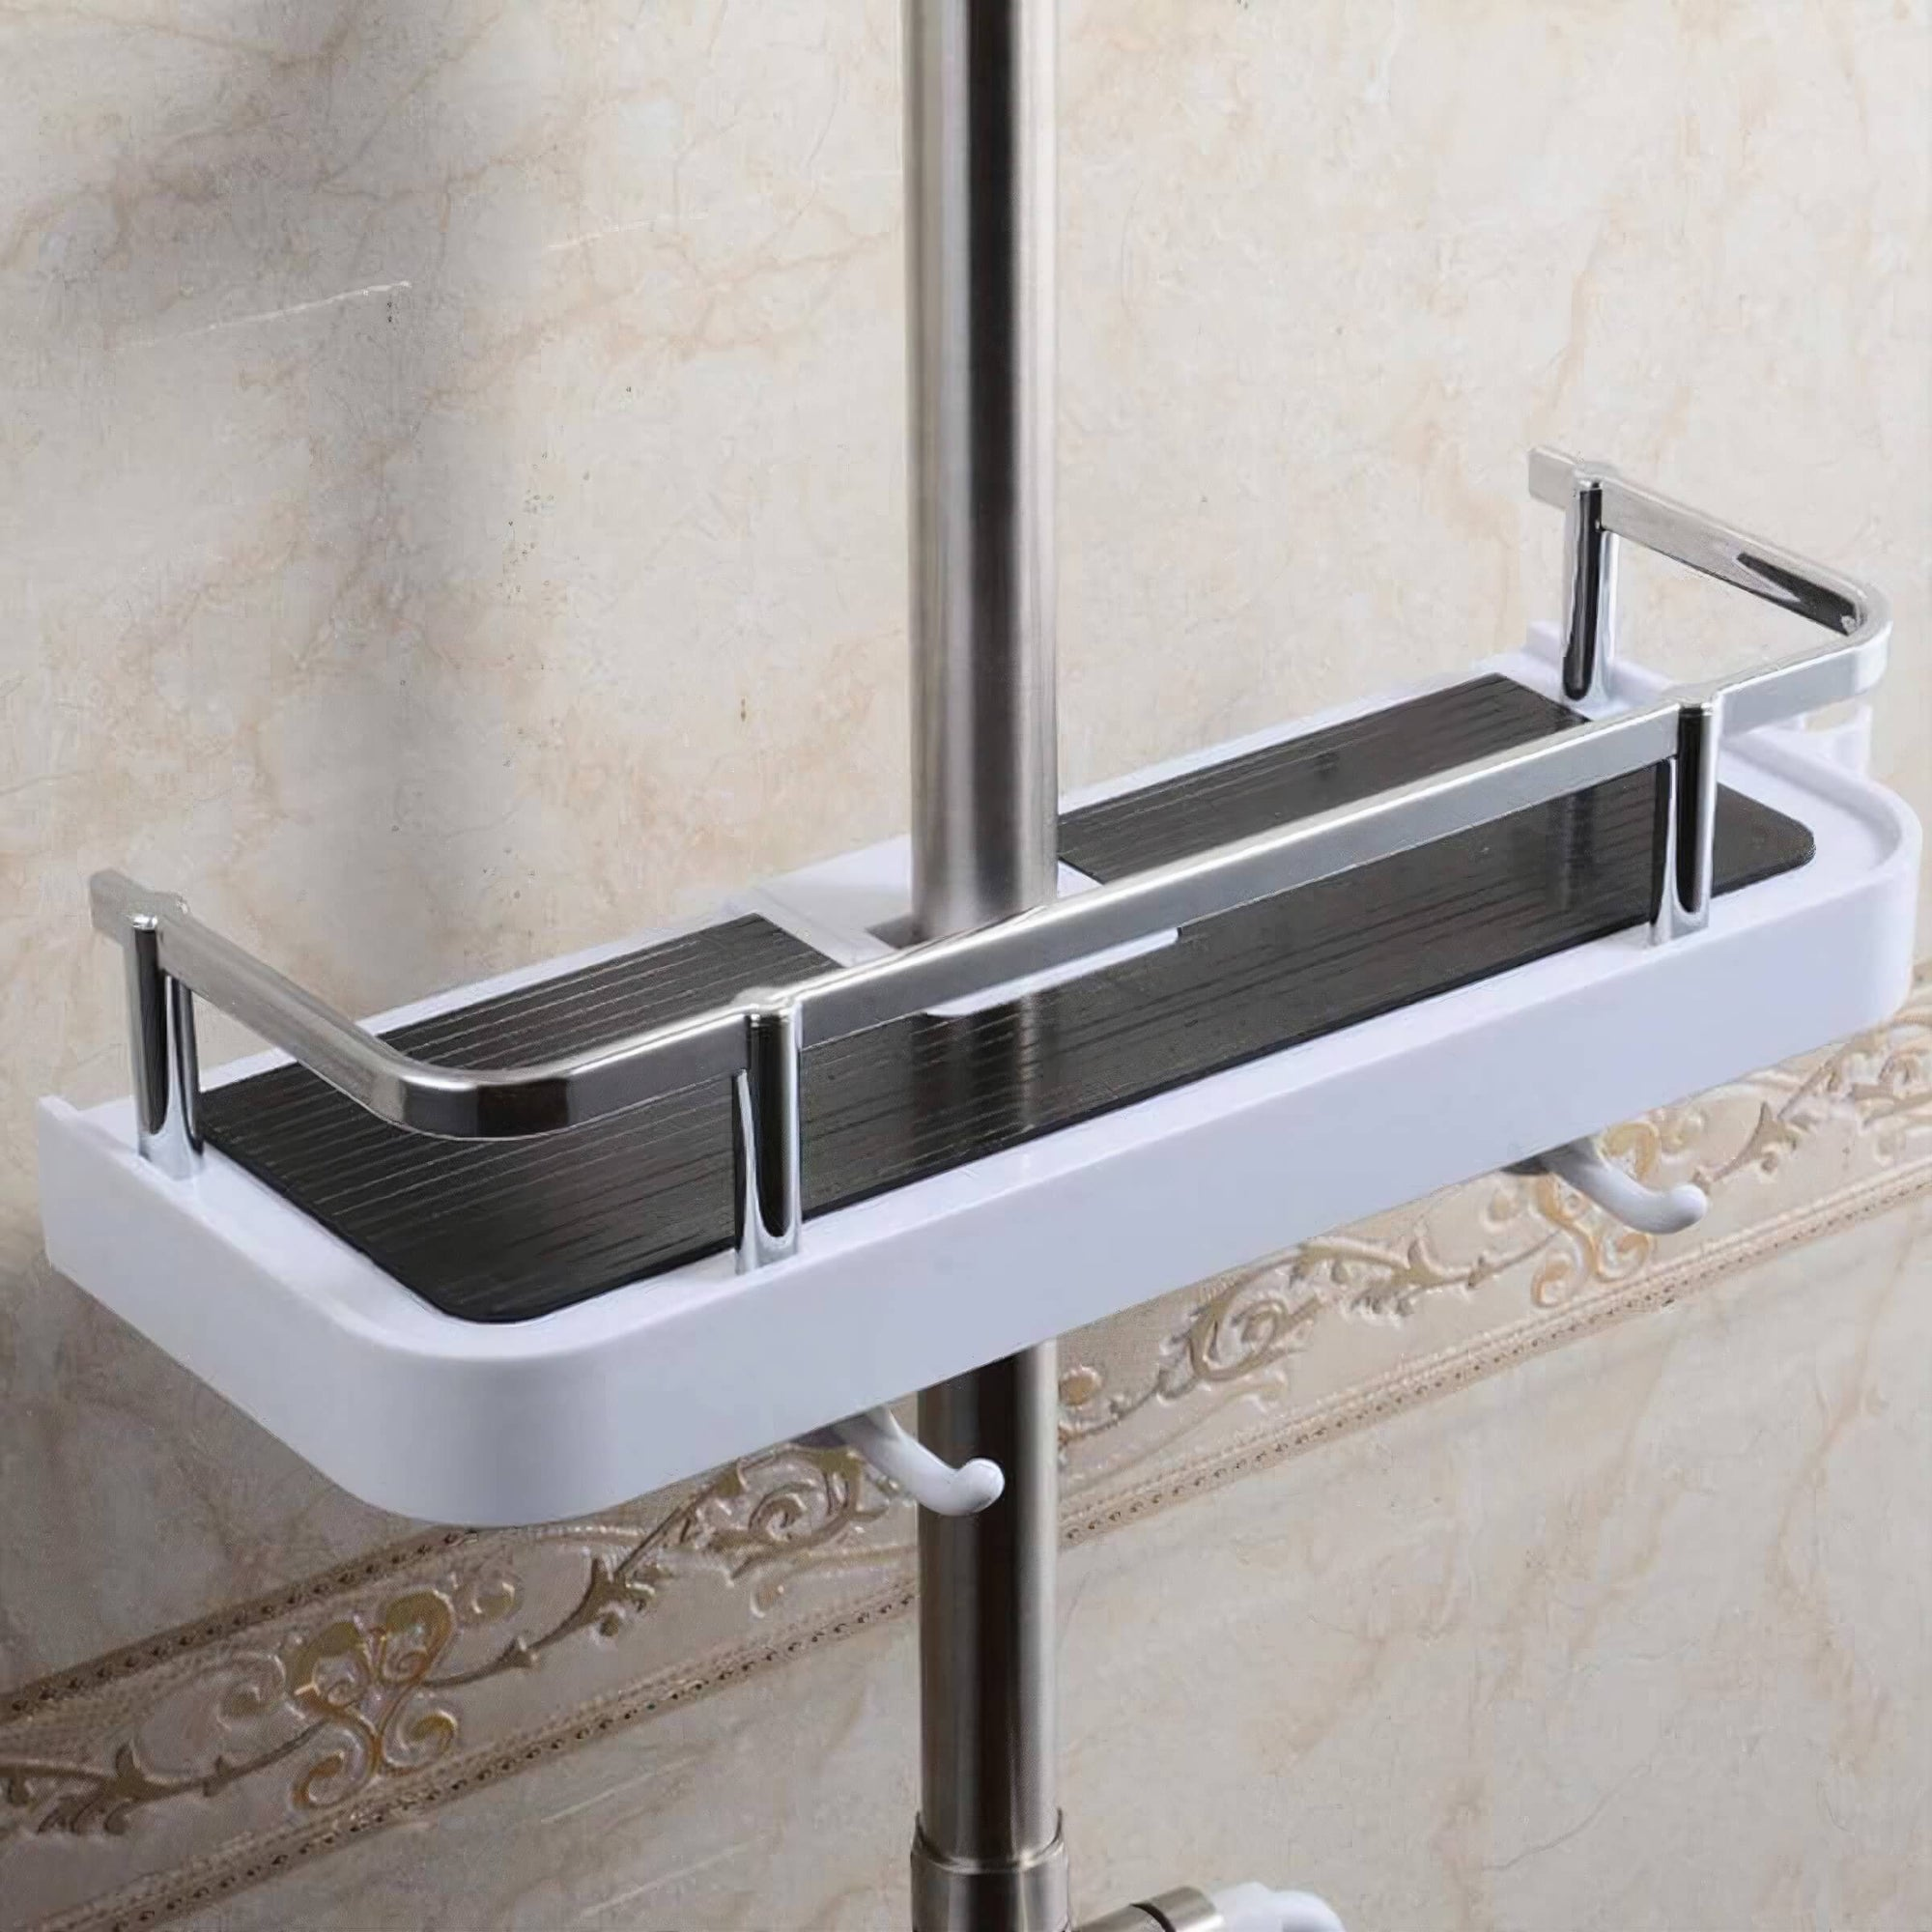 Shower Head Organizer